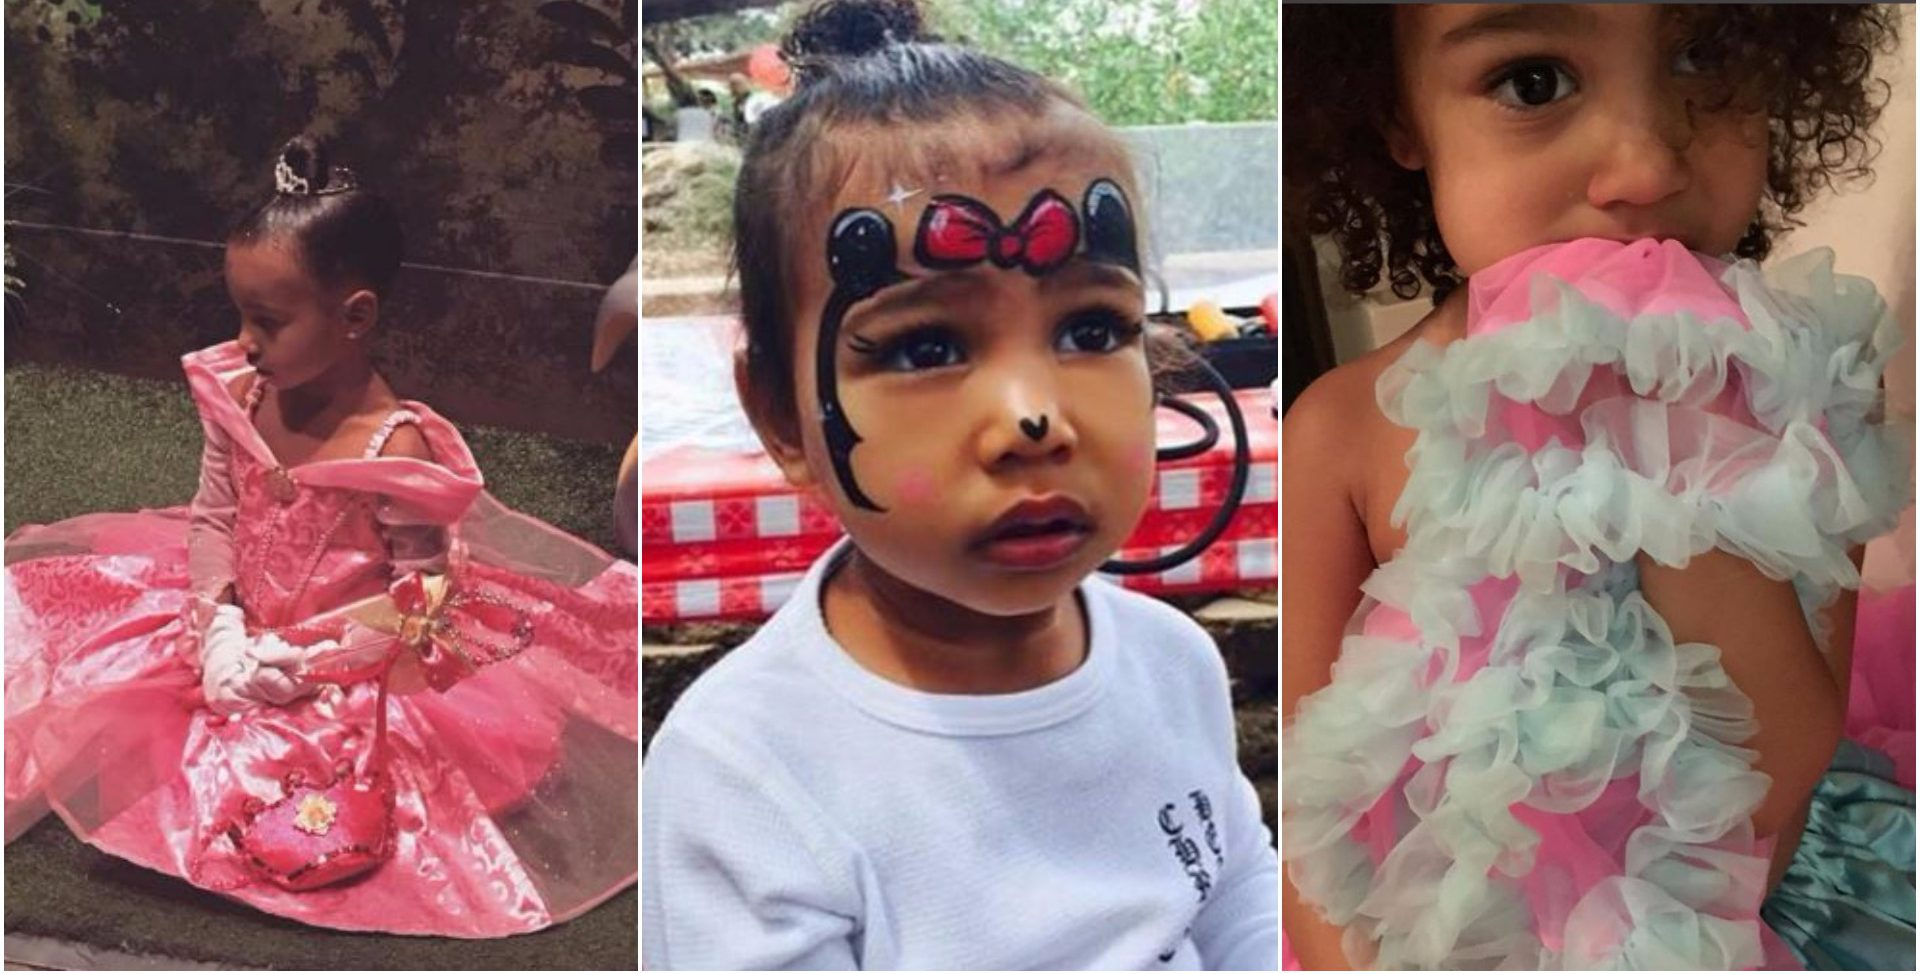 The Kardashians showered North West with Instagram love on her 3rd birthday